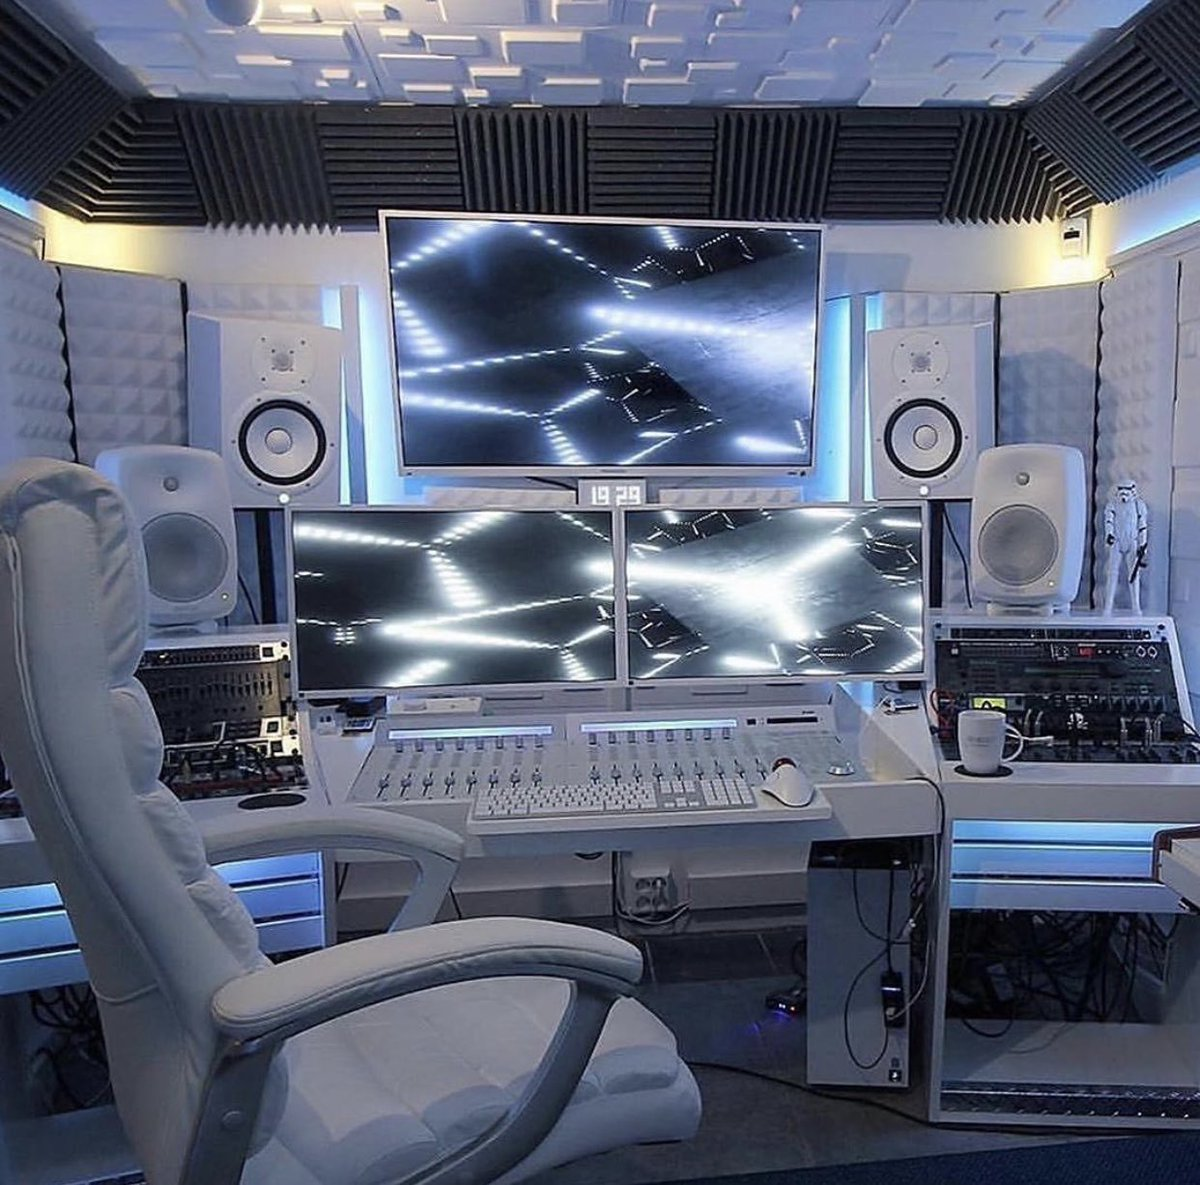 Who is up creating? #StudioLife https://t.co/p8dlqs3m1d